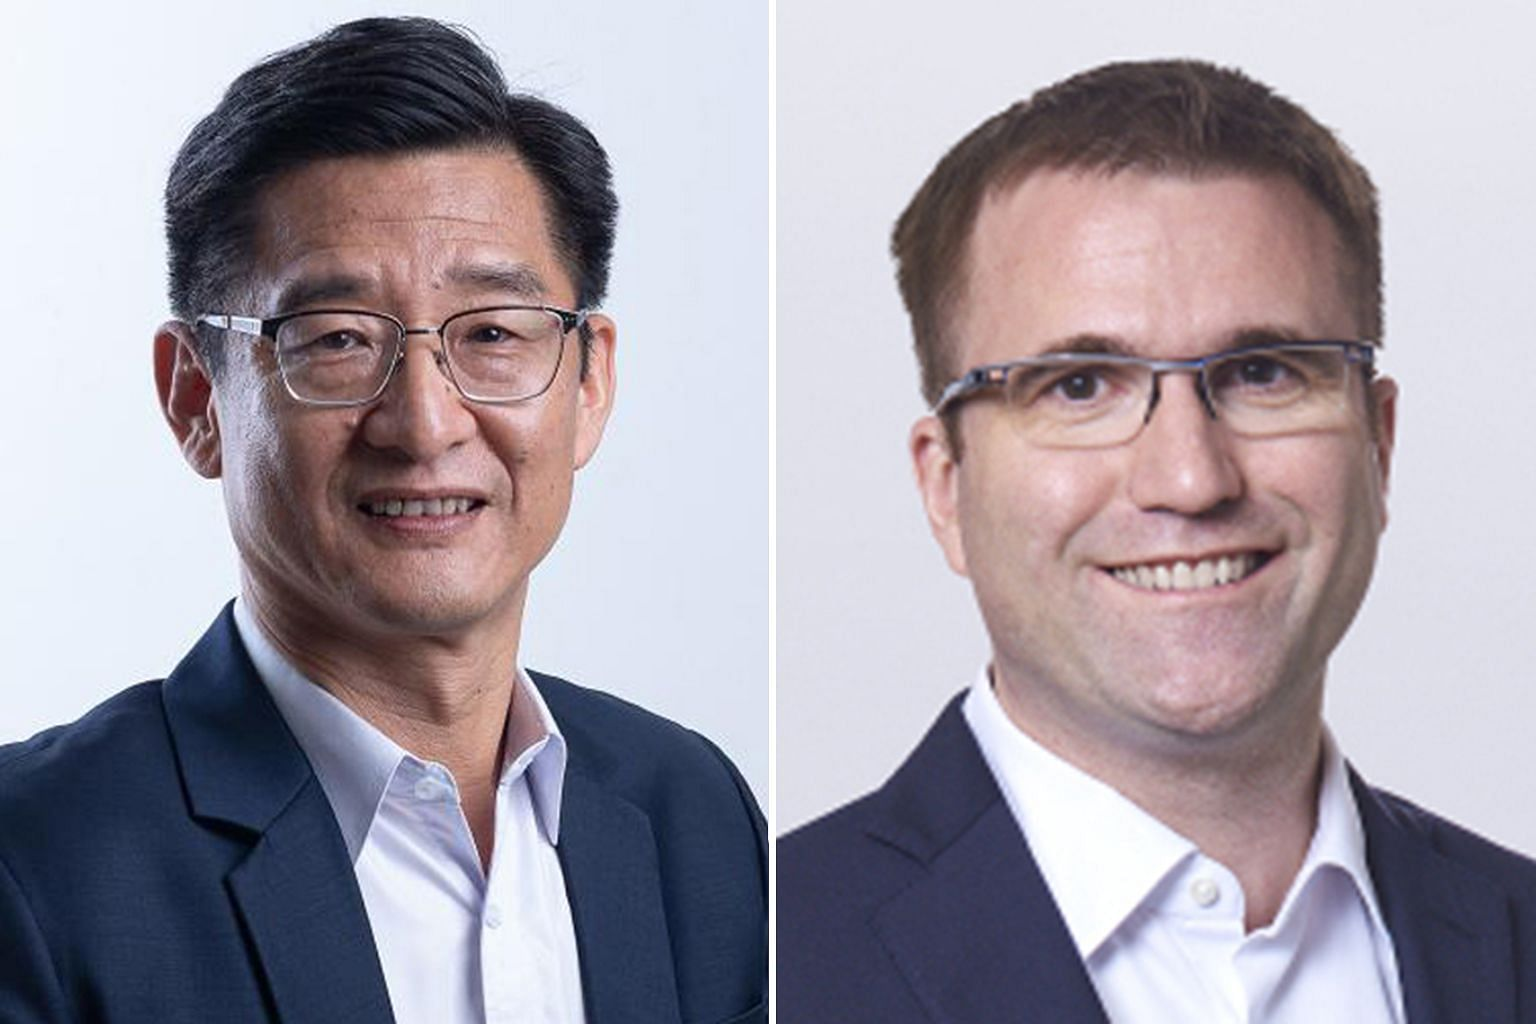 Lazada's group president Li Chun (left) will be group CEO from next Wednesday, succeeding Mr Pierre Poignant (right), who will become special assistant to Alibaba Group chairman and CEO Daniel Zhang.